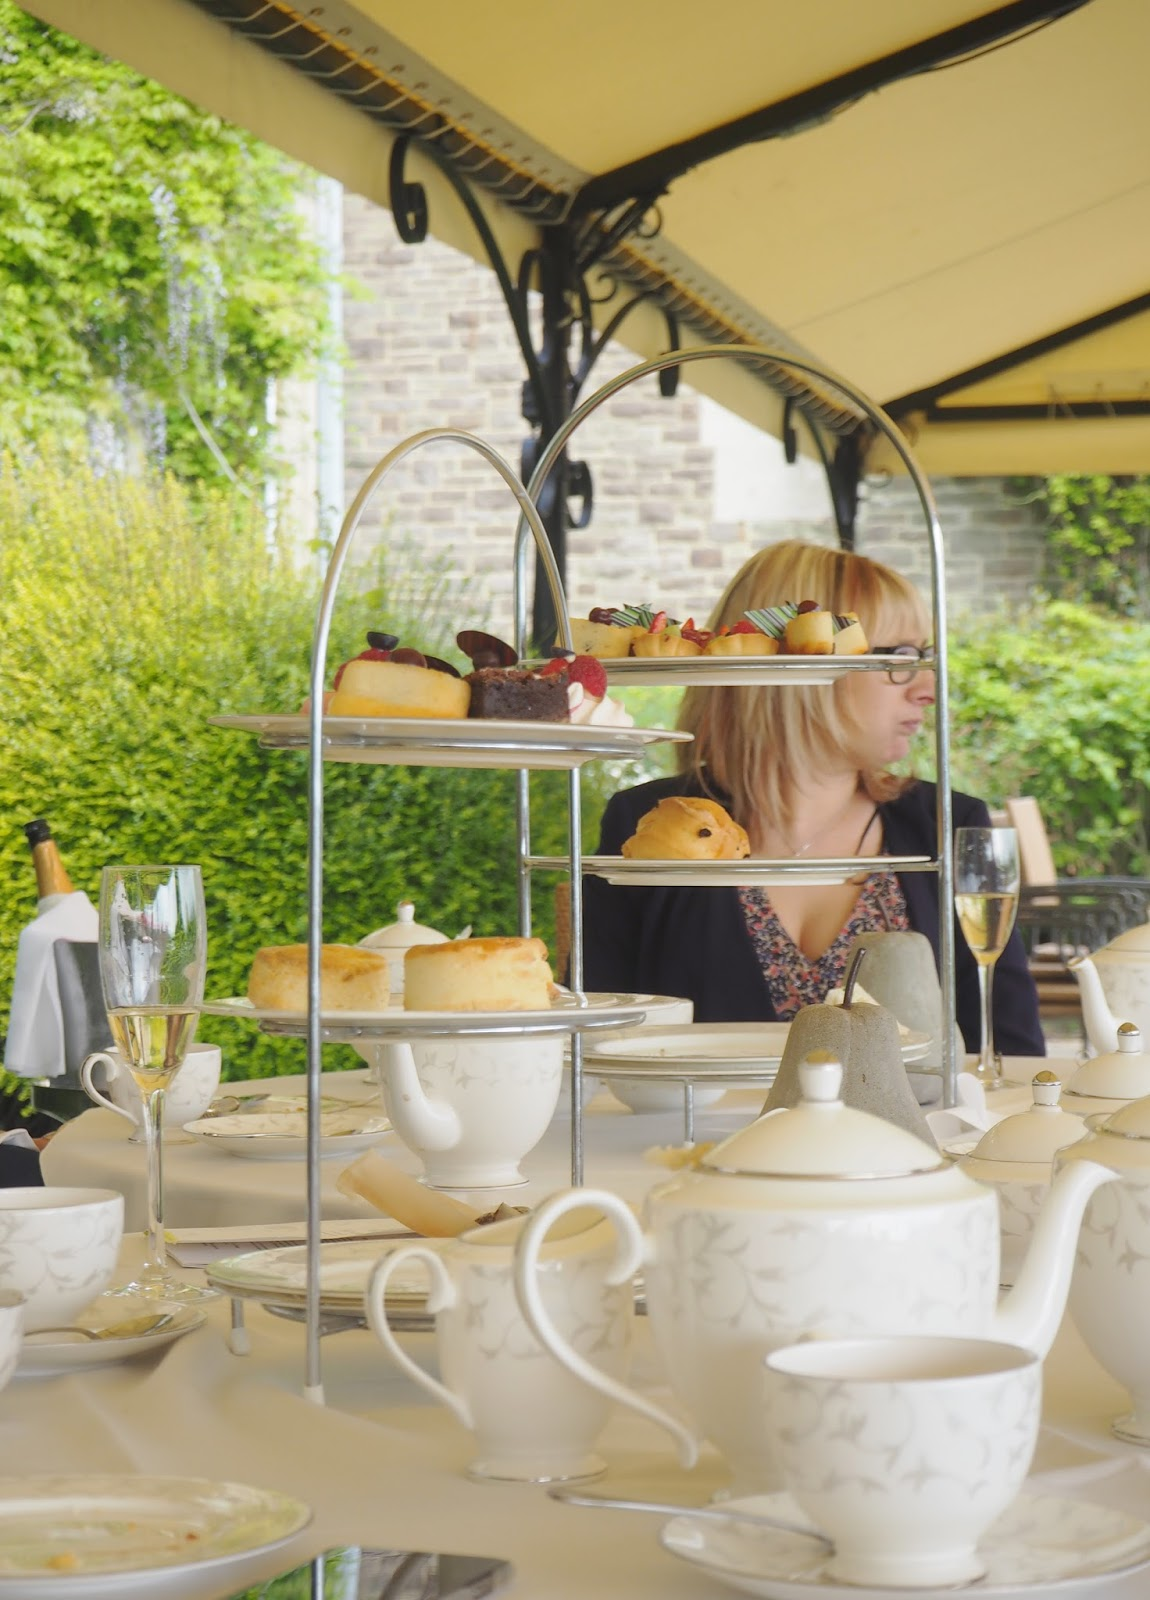 Afternoon tea review at South Lodge in Horsham - afternoon tea stand